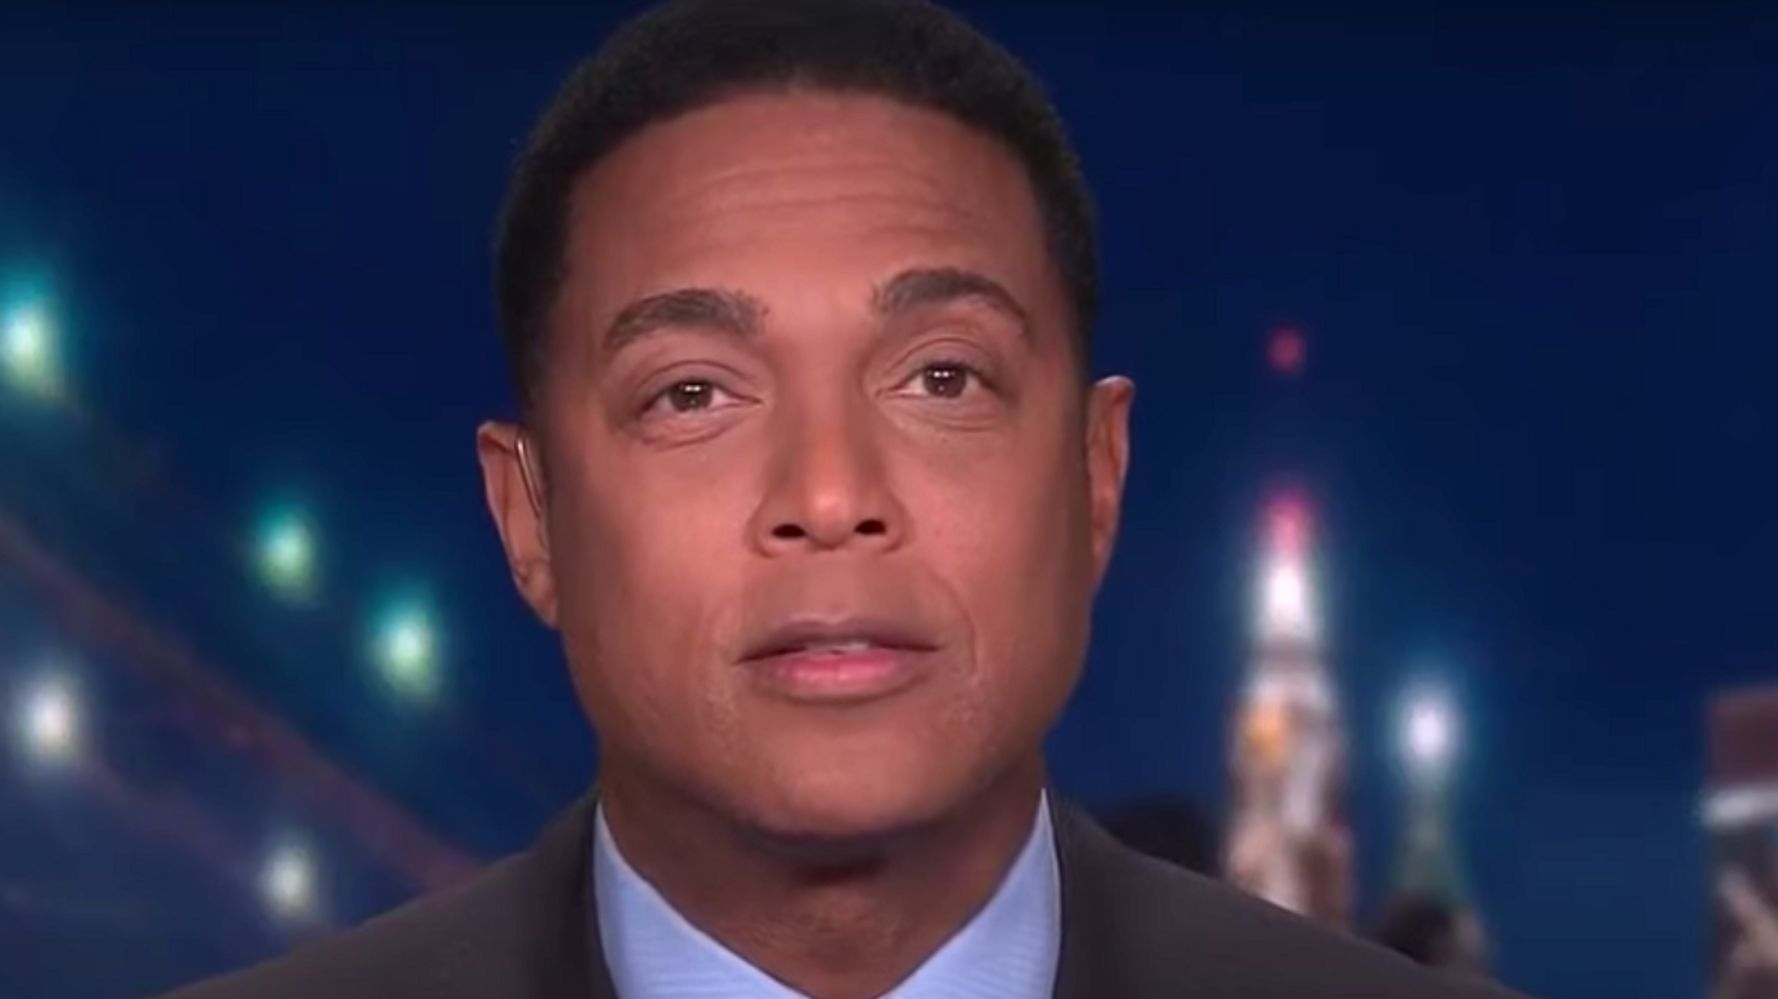 Don Lemon Has A Simple Solution To One Of Donald Trump's Favorite Rally Gripes